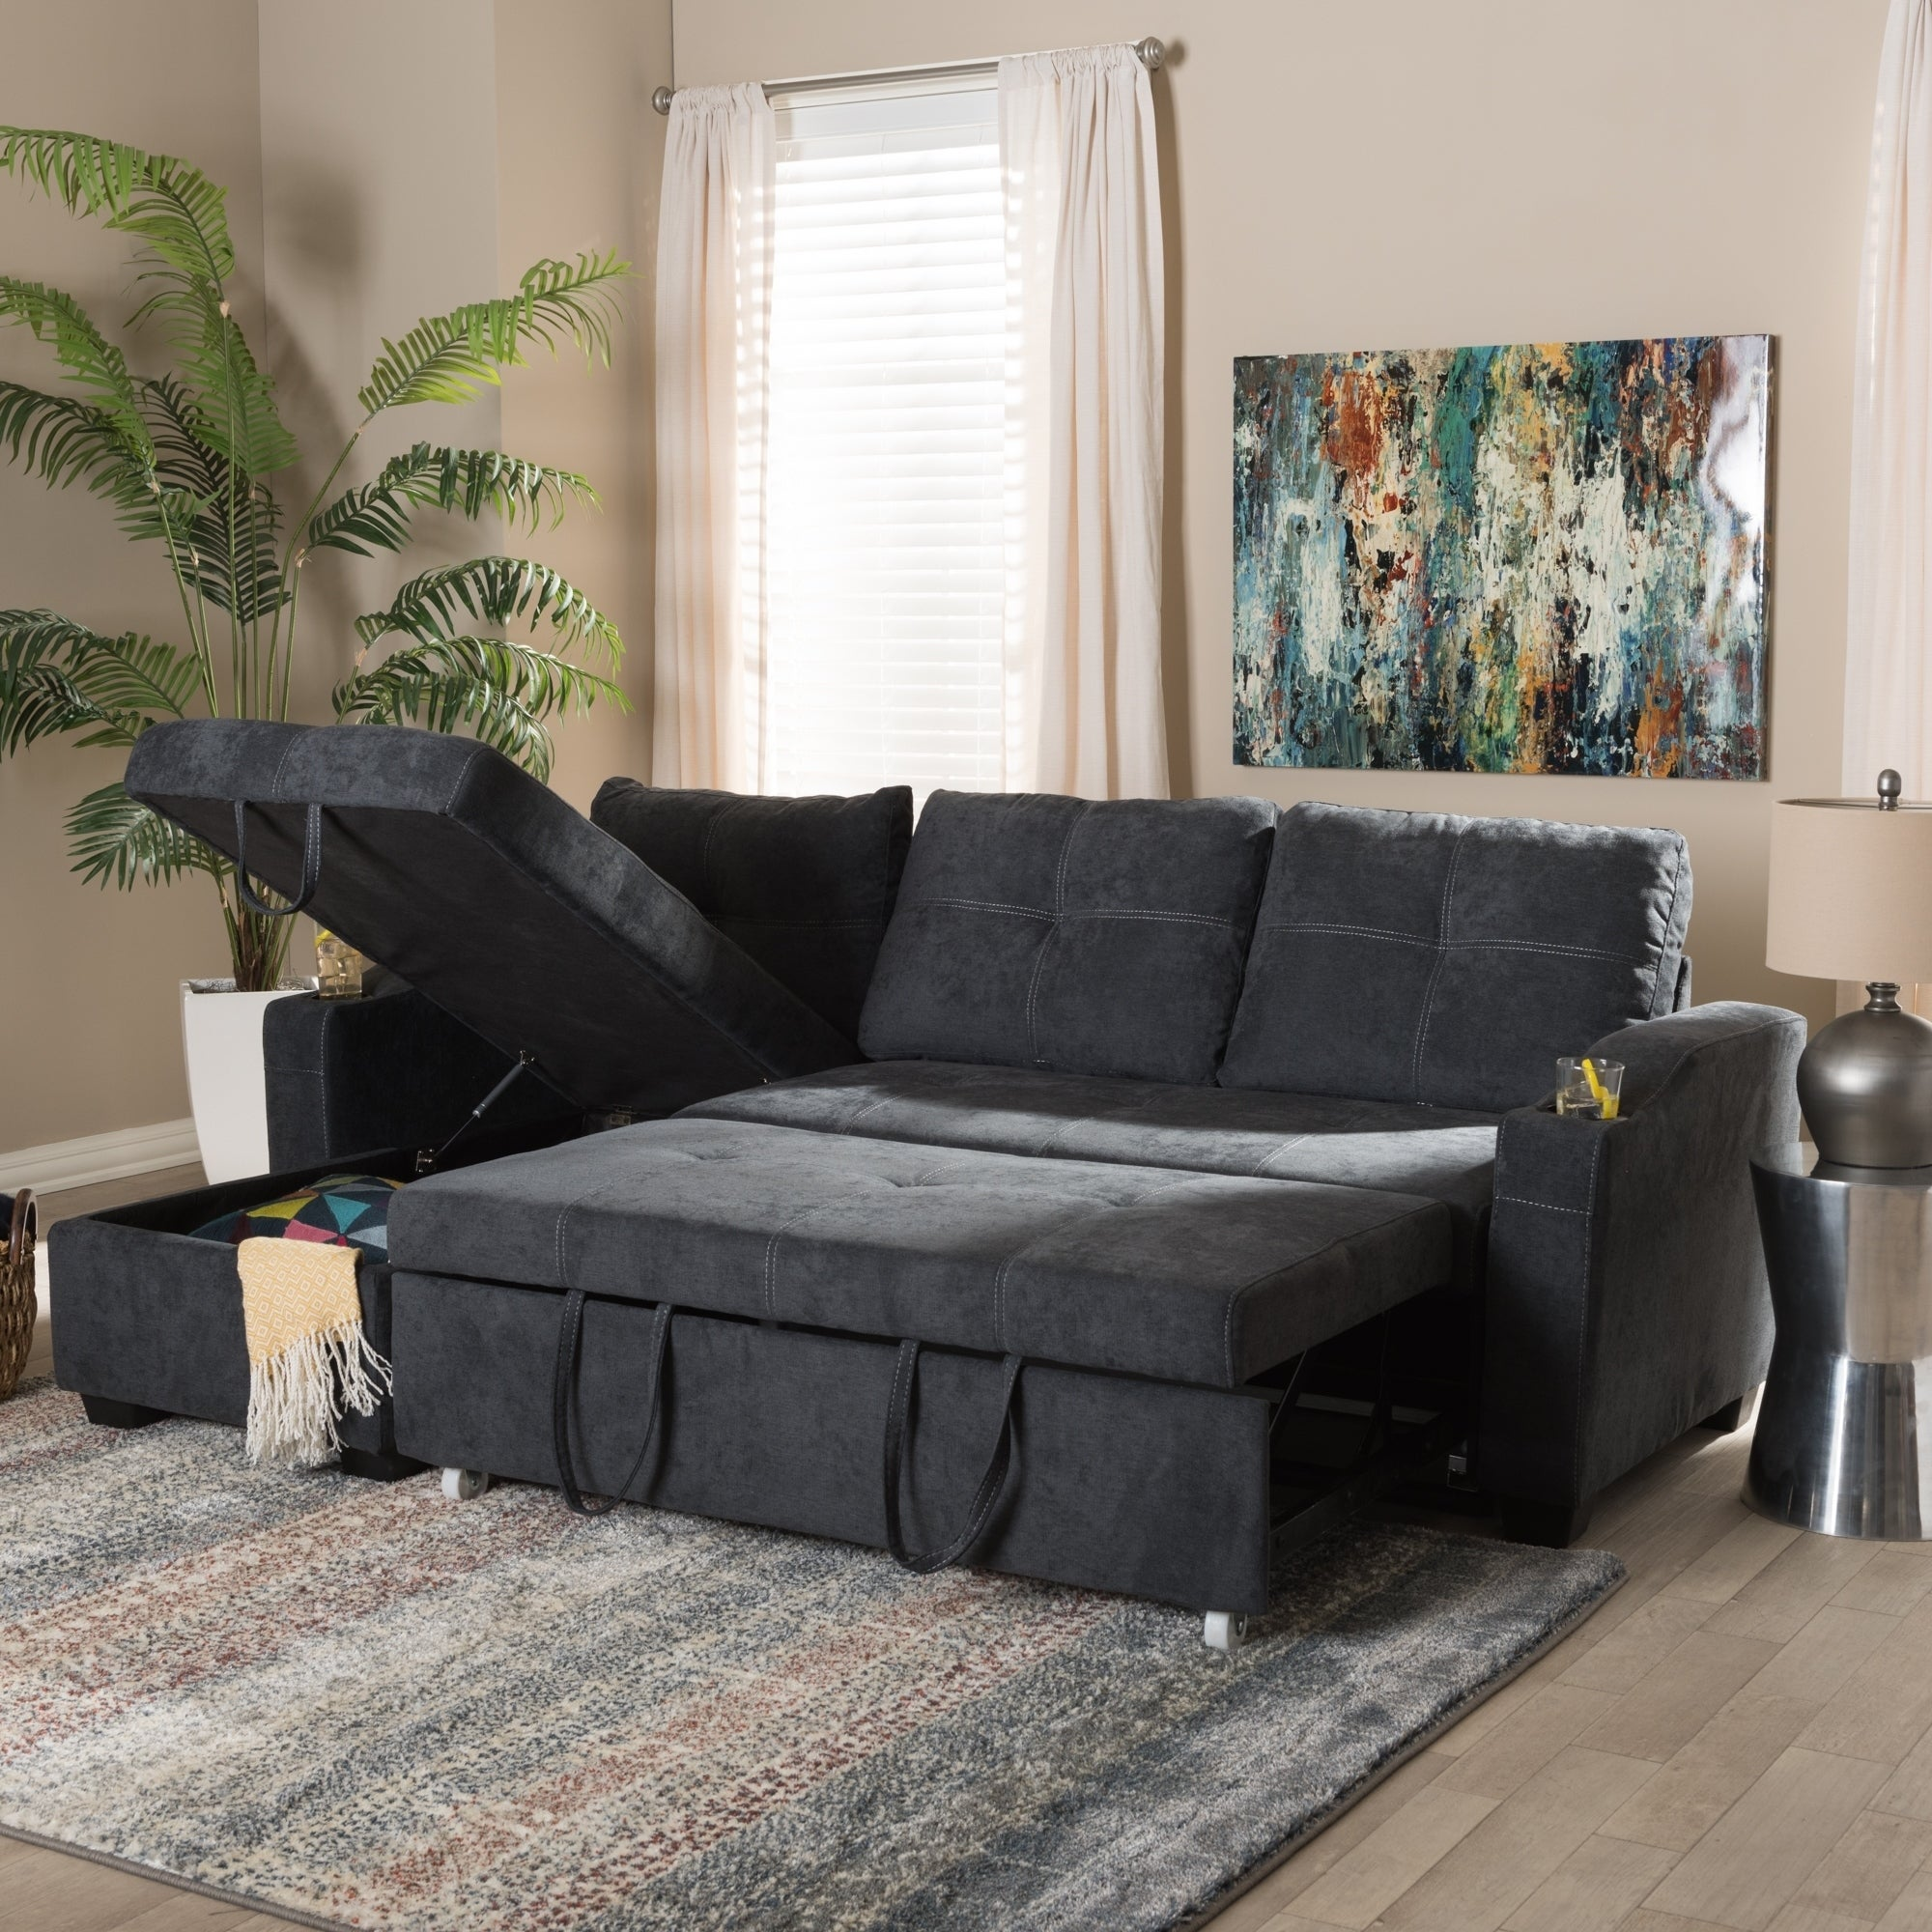 Terrific Contemporary Reversible Sectional Sofa By Baxton Studio Caraccident5 Cool Chair Designs And Ideas Caraccident5Info